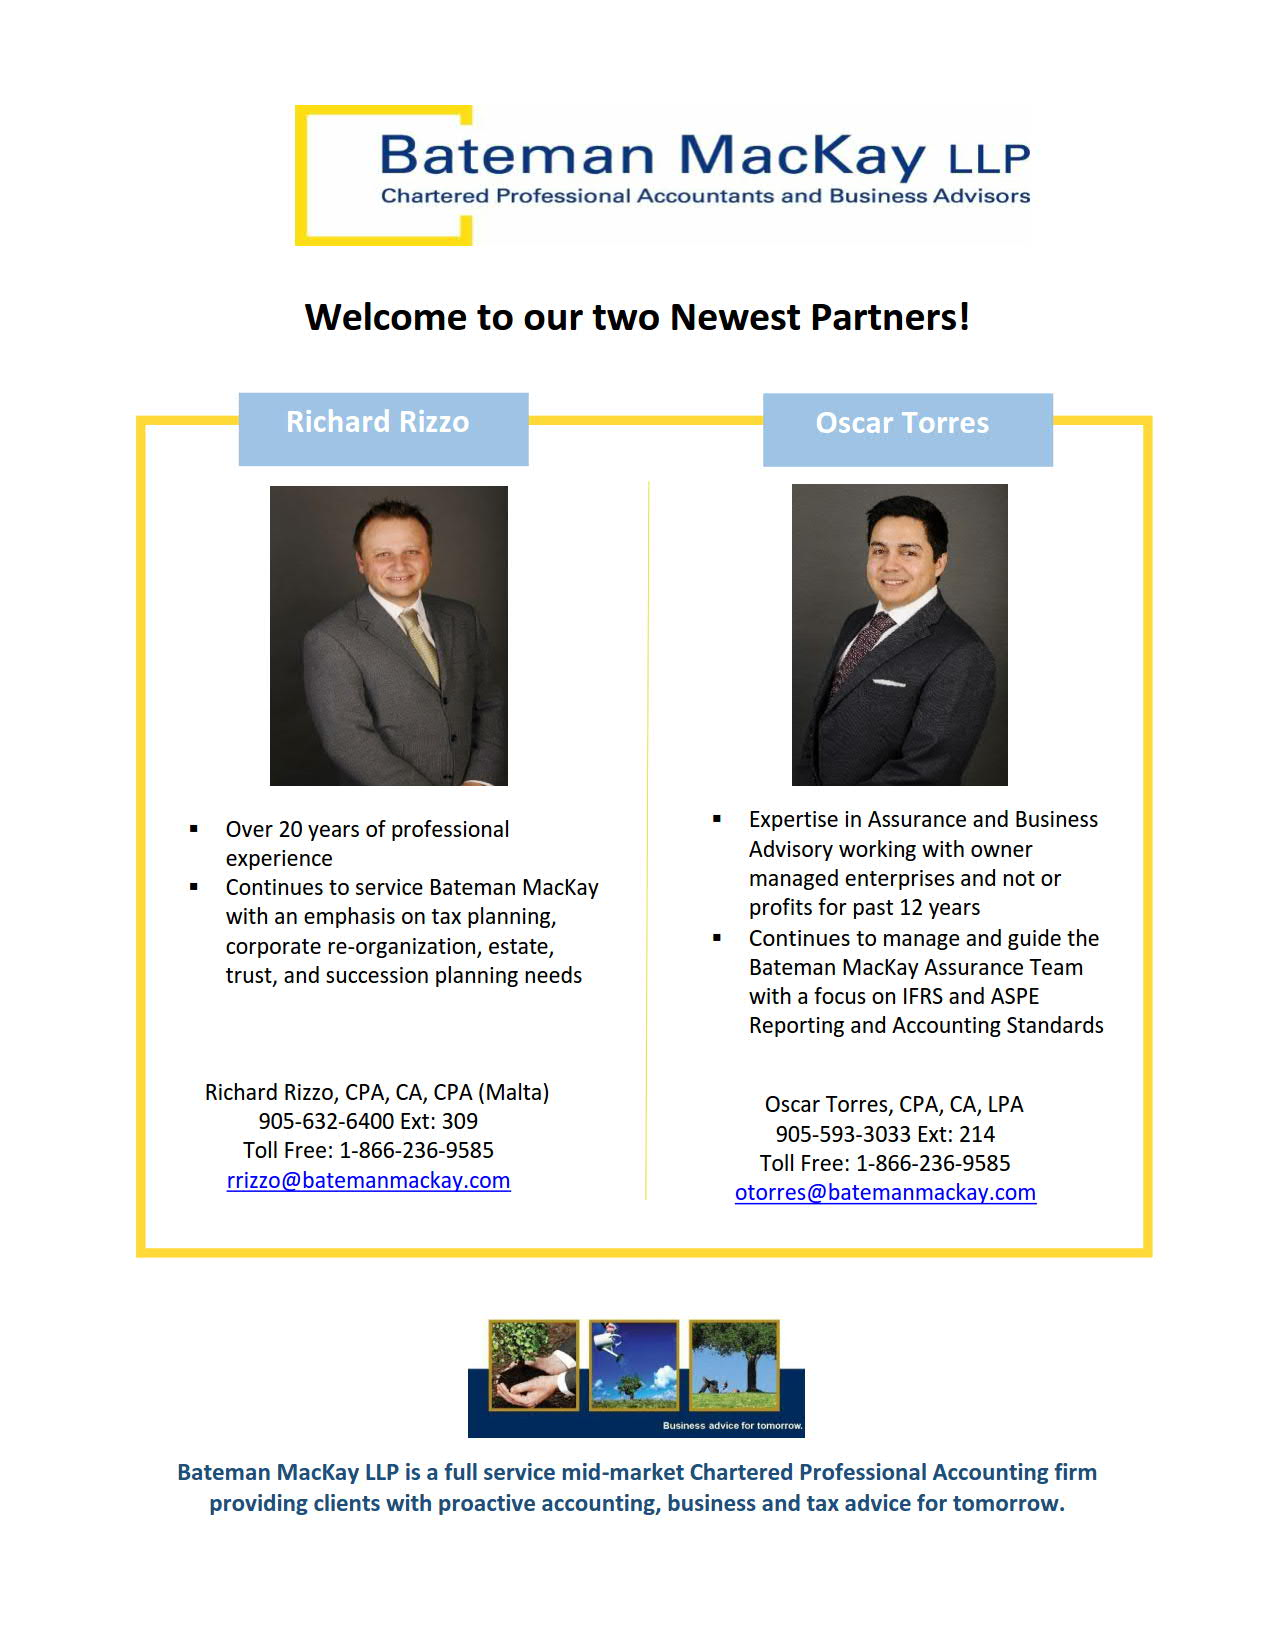 Welcome to our Two Newest Partners!